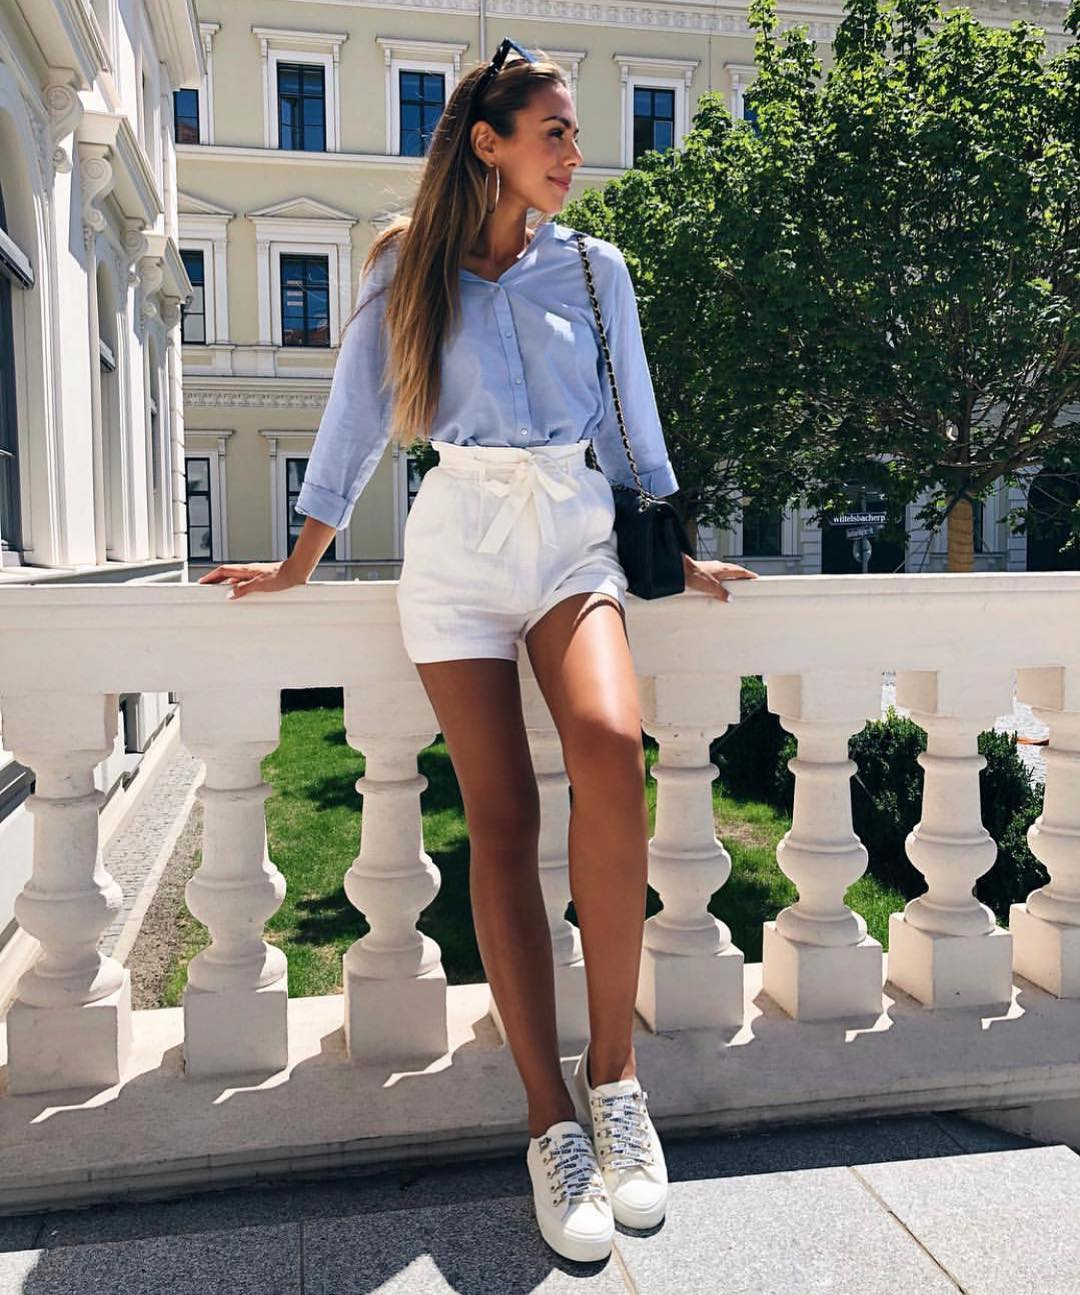 Summer Essentials: Blue Shirt With Gathered White Shorts And White Kicks 2020